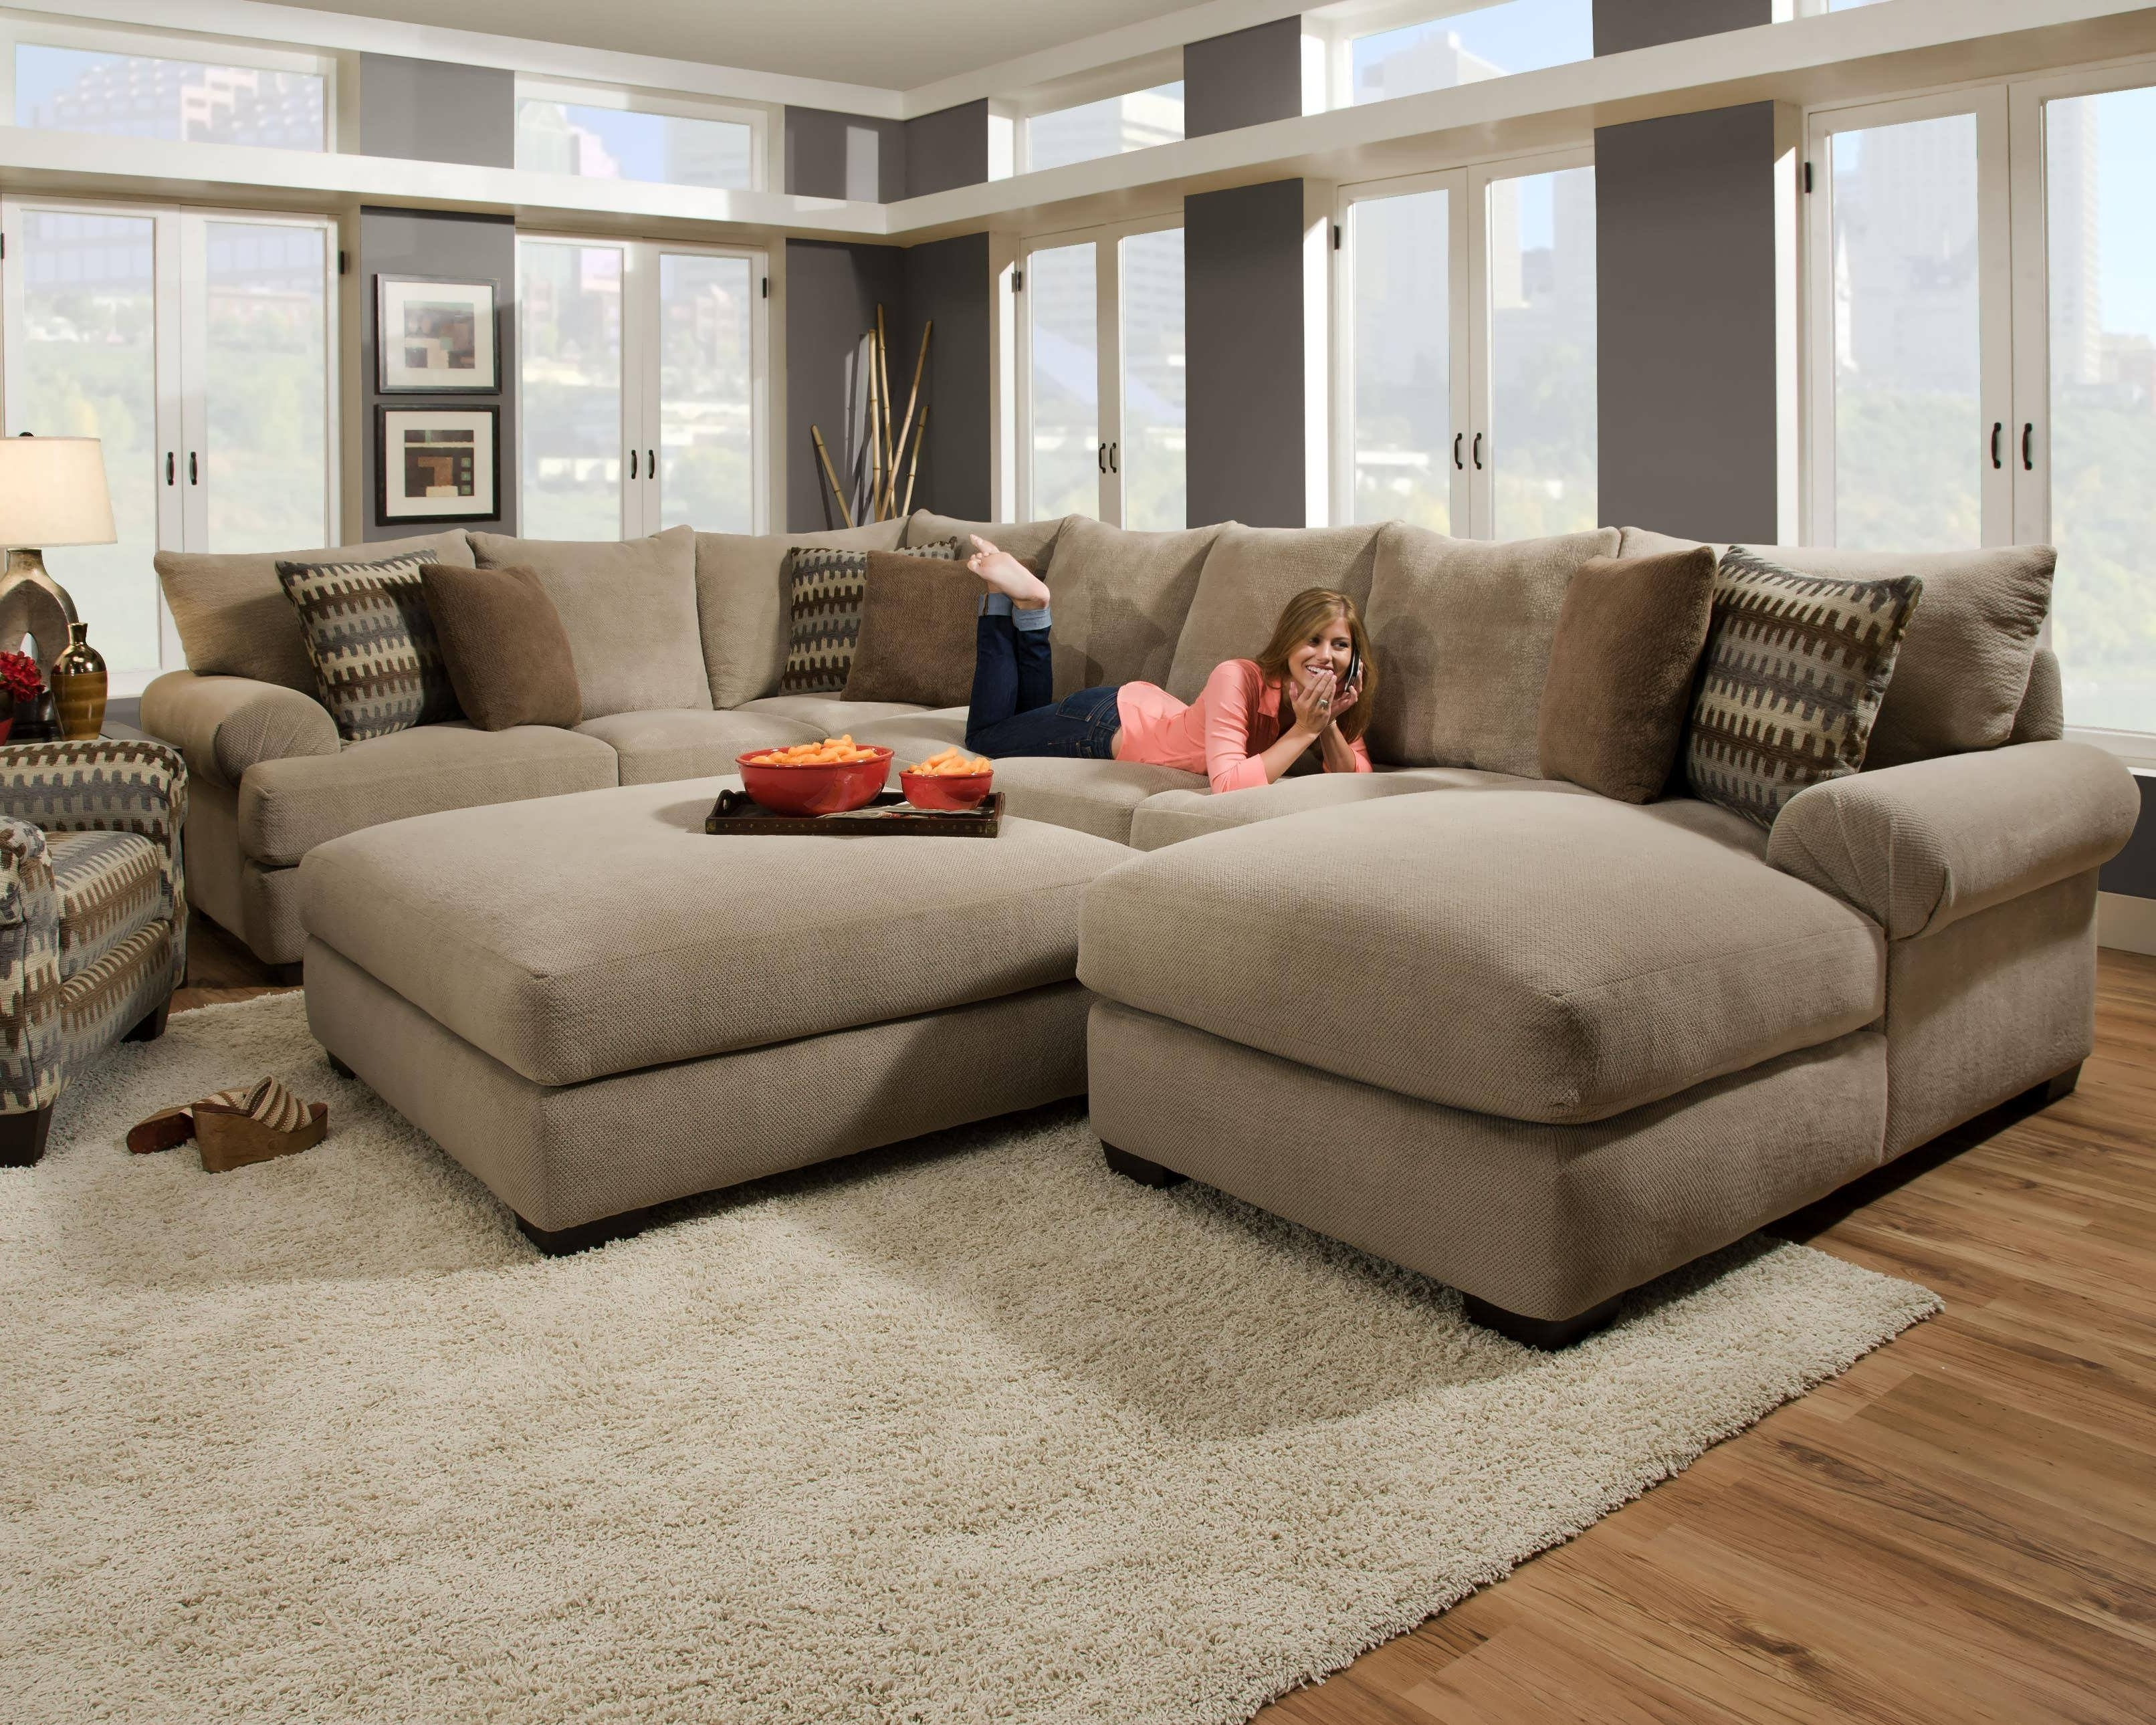 Sofa : Blue Sectional Sofa Leather Sectional With Chaise Cheap With Fashionable Oversized Sectionals With Chaise (View 4 of 15)